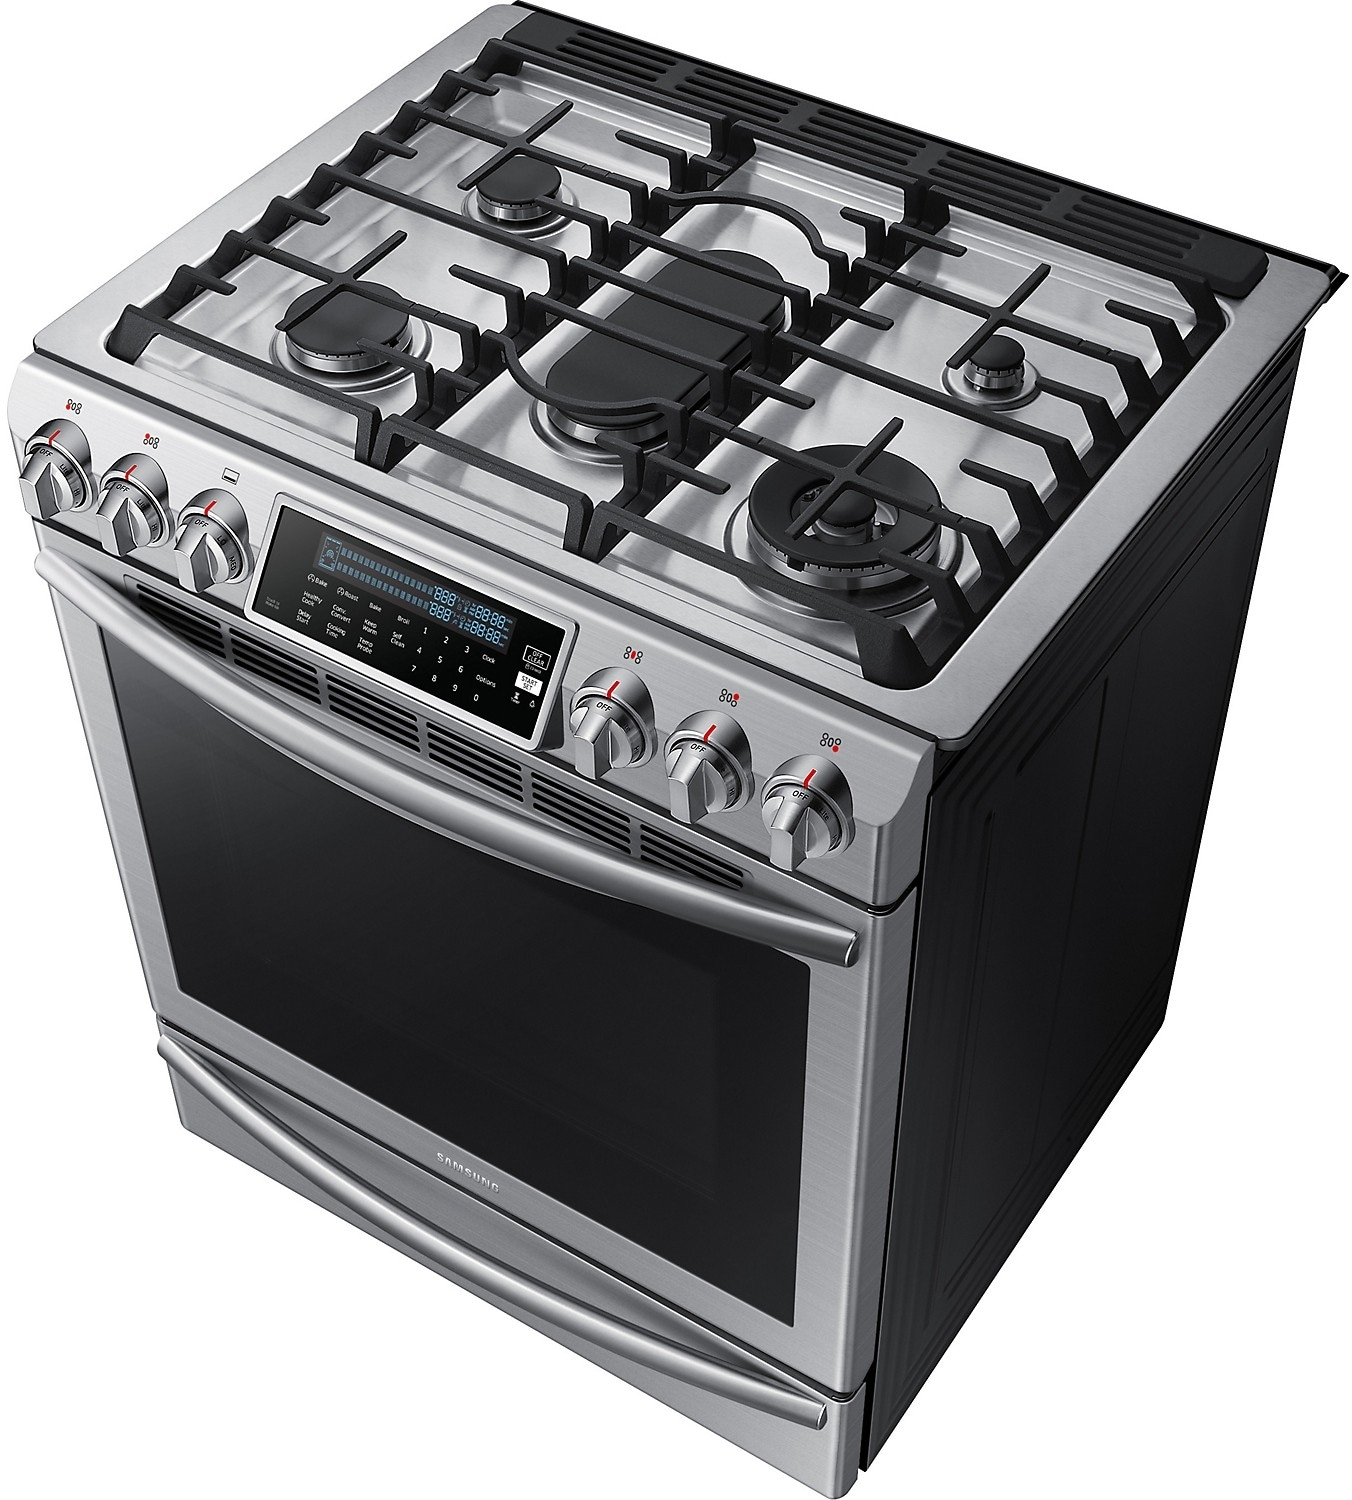 samsung 5 8 cu ft convection slide in gas range stainless steel the brick. Black Bedroom Furniture Sets. Home Design Ideas